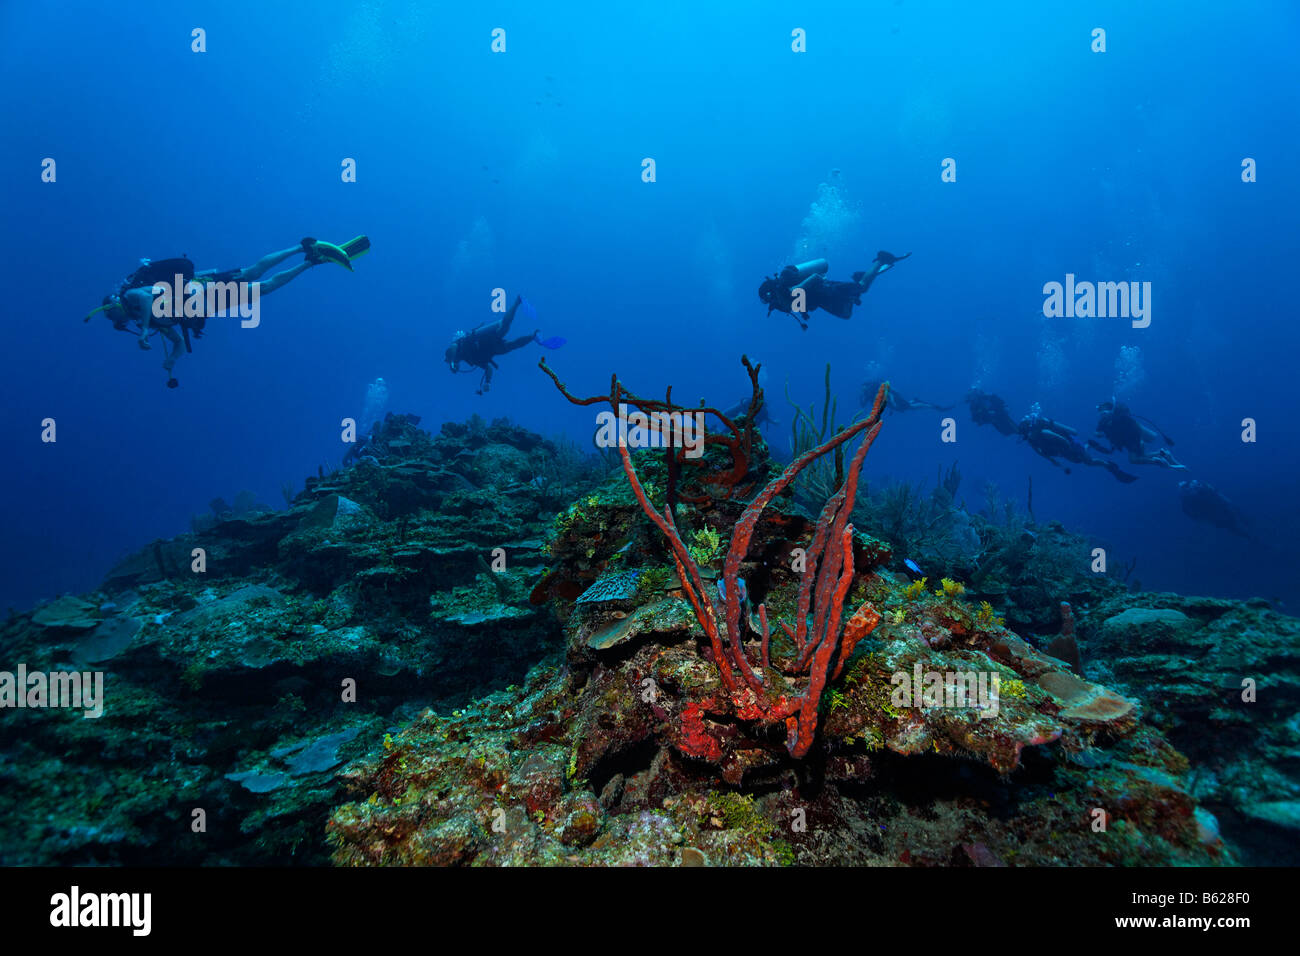 Scuba divers in a group swimming over a Caribbean coral reef, barrier reef, San Pedro, Ambergris Cay Island, Belize, - Stock Image